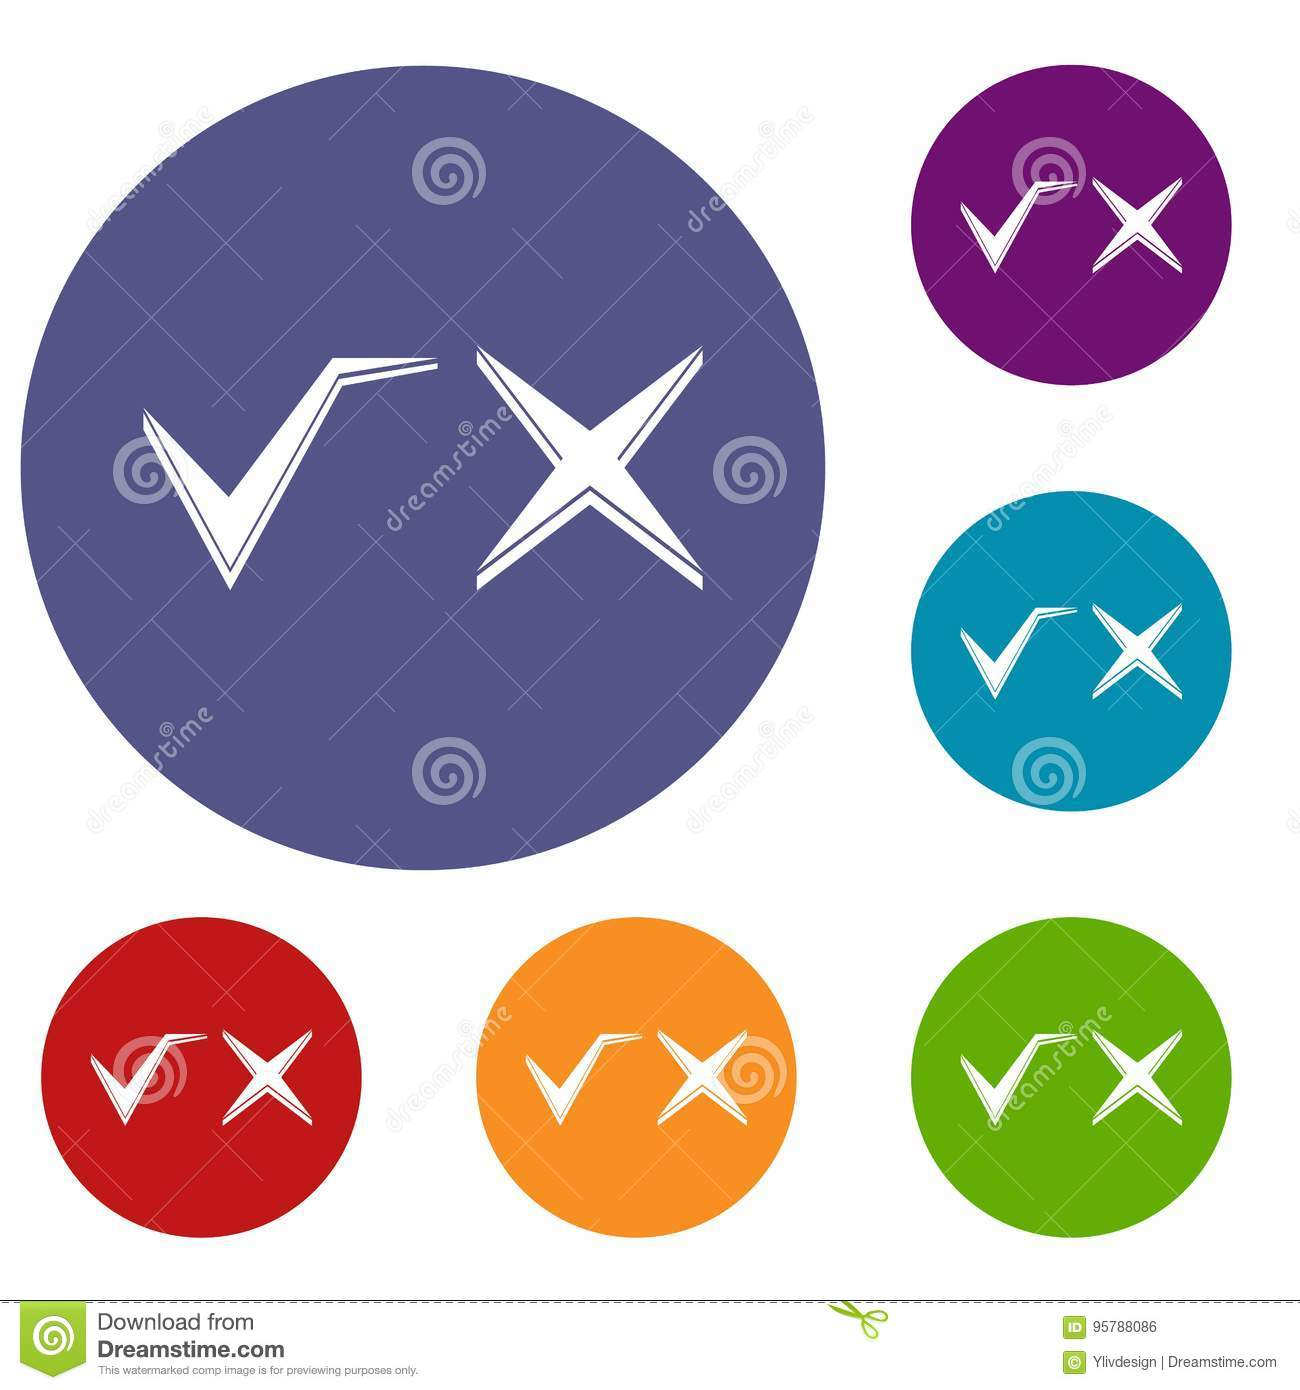 Tick And Cross Icons Set Stock Vector Illustration Of Interface